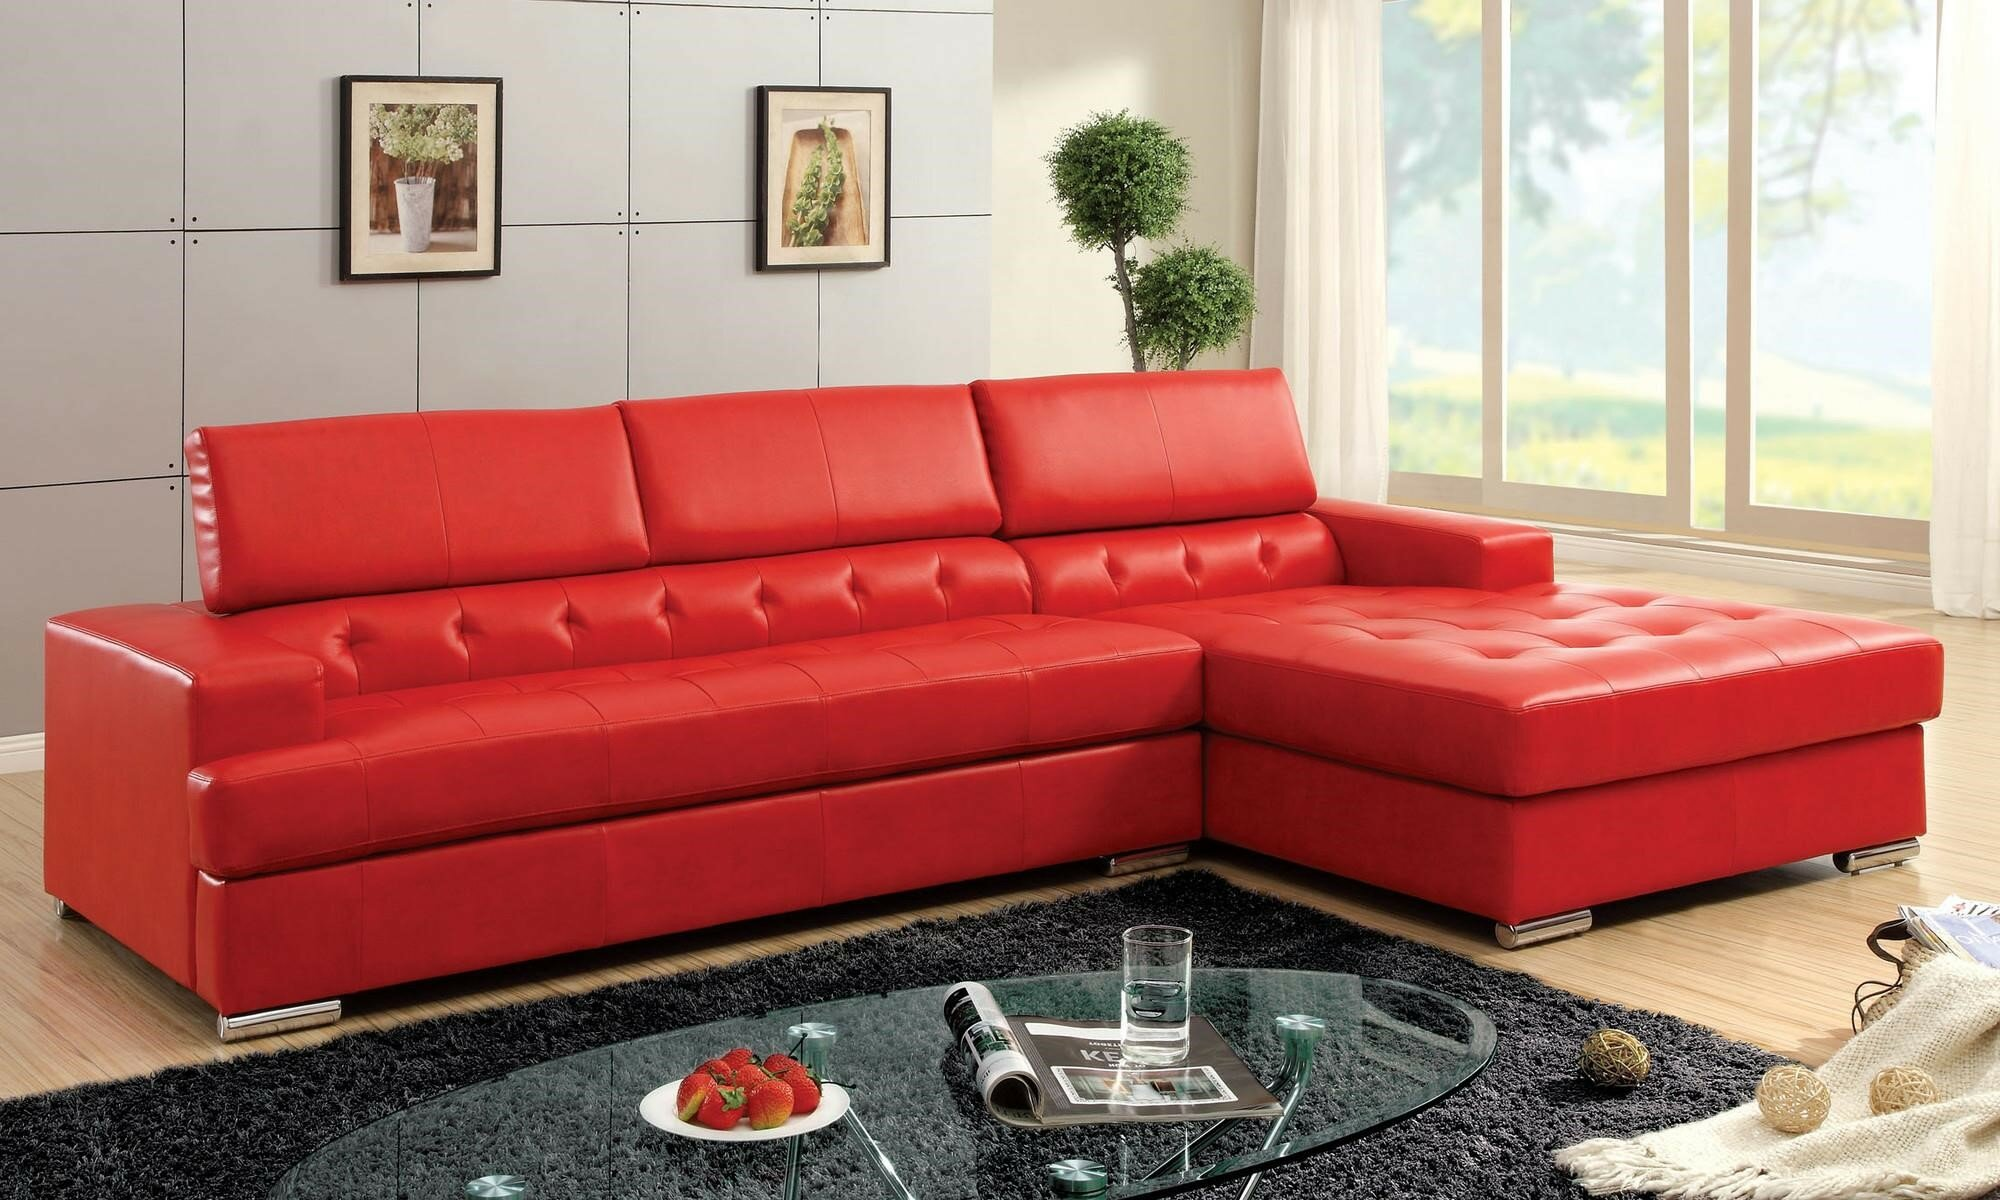 Sectional Microfiber Sofa | Red Sofa Sectional | Red Sectional Sofa